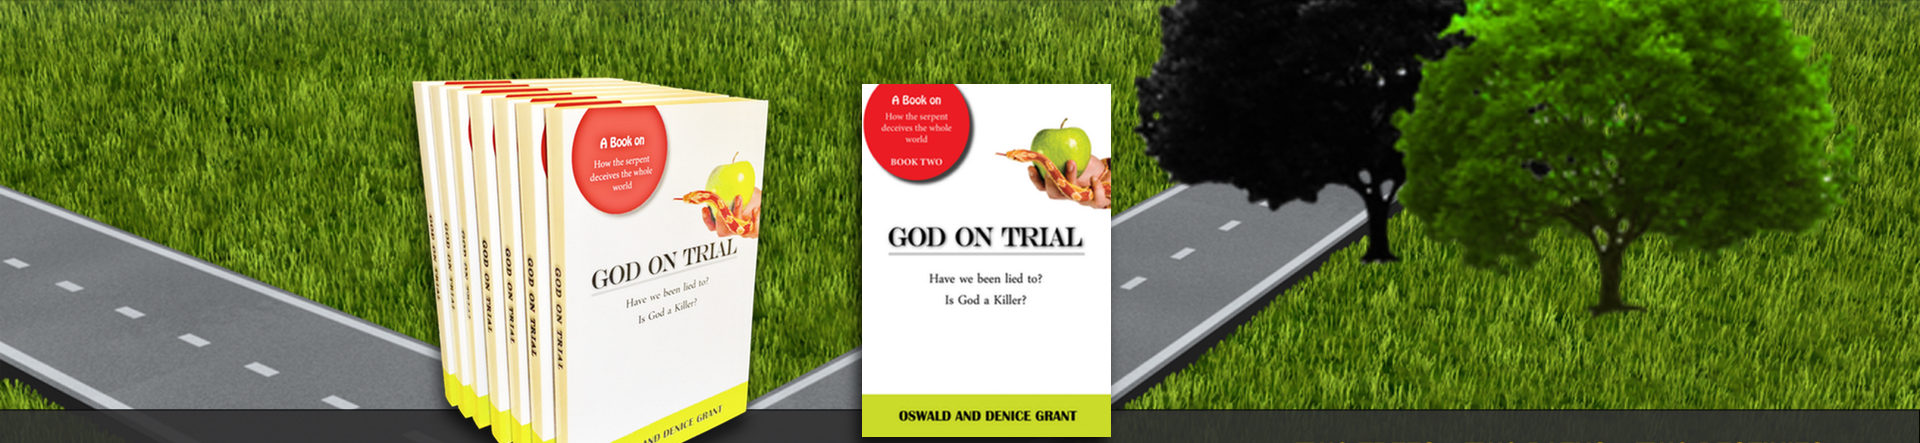 god on trial God's character, as revealed by the evidence displayed in the experience of job,  is on trial to see if his love and power can really change man from evil and.